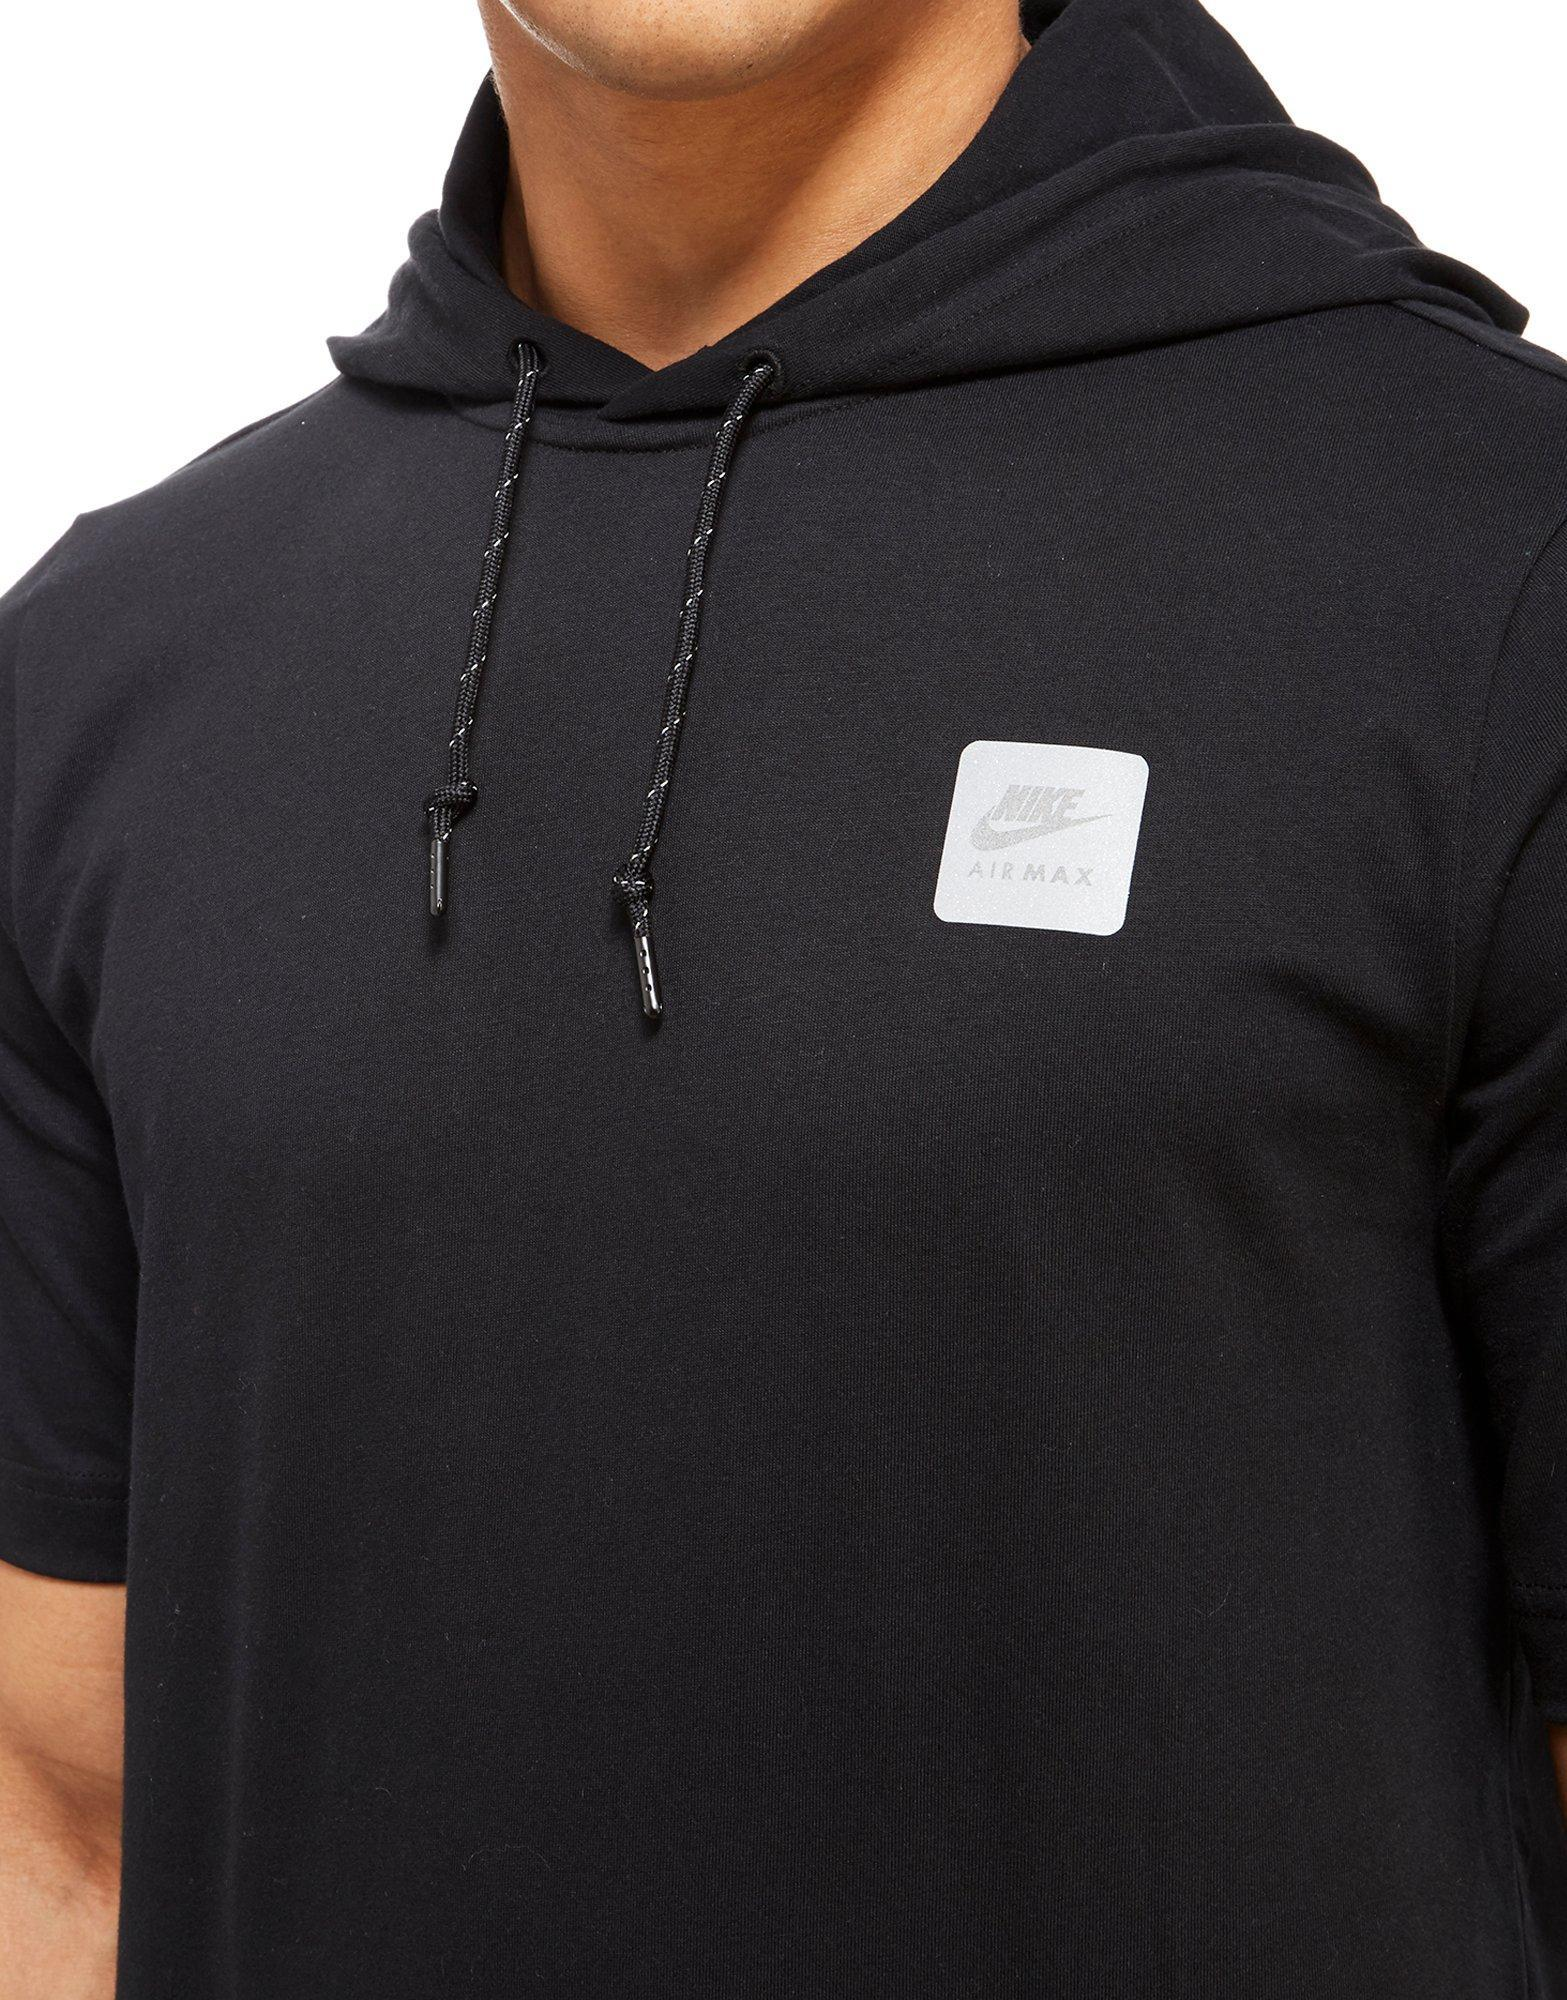 nike air max hooded t shirt in black for men lyst